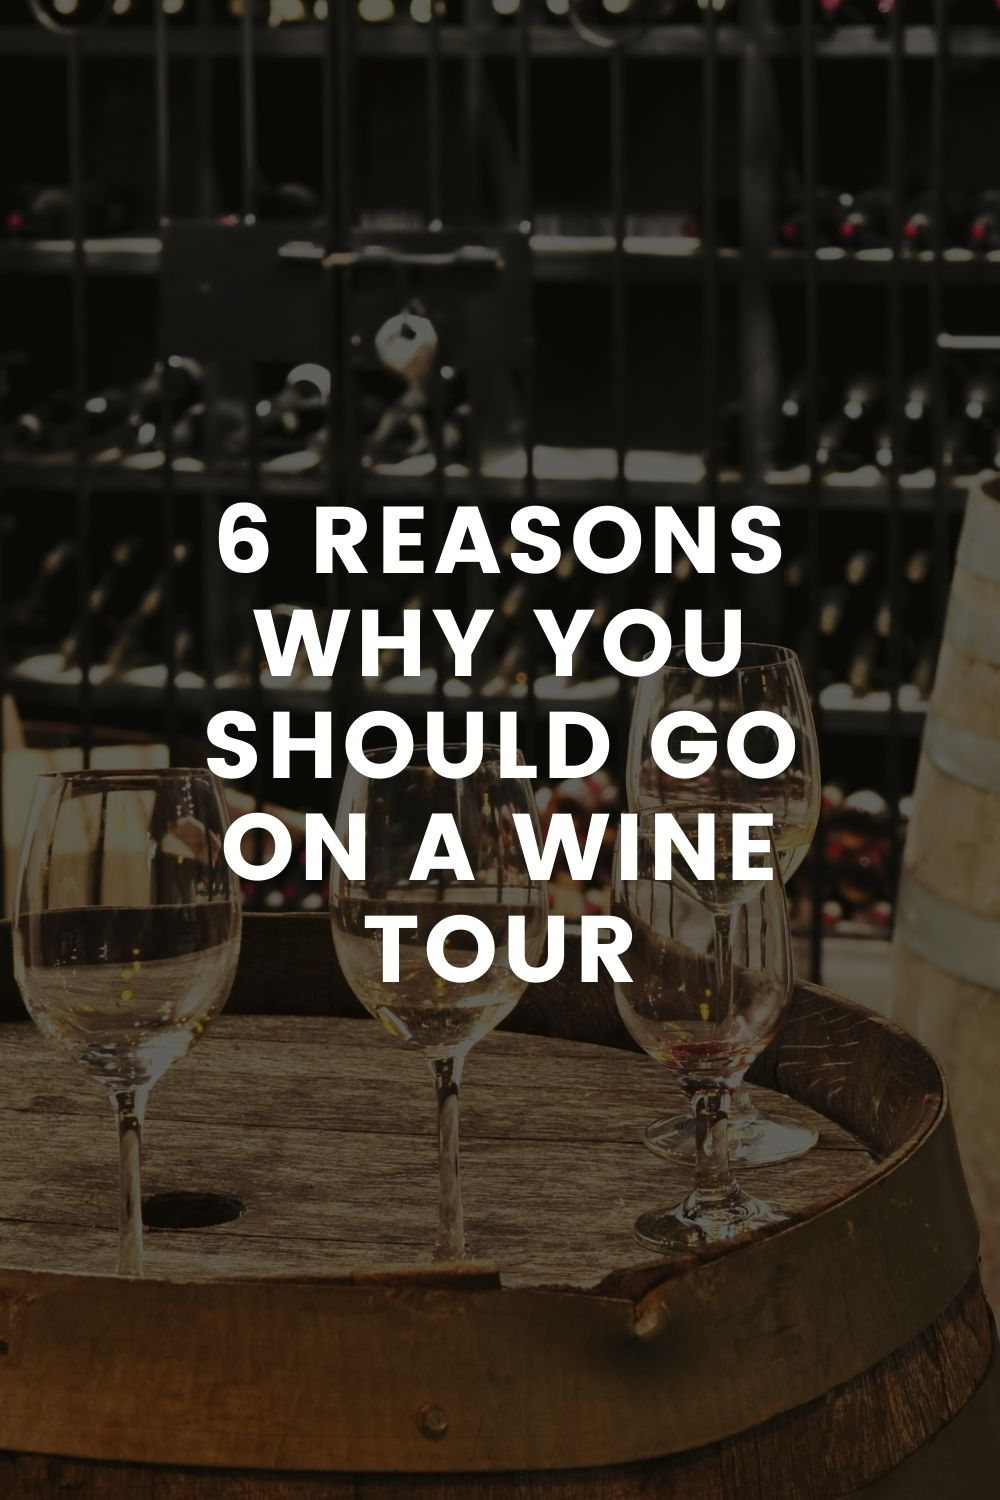 6 Reasons Why You Should Go on a Wine Tour